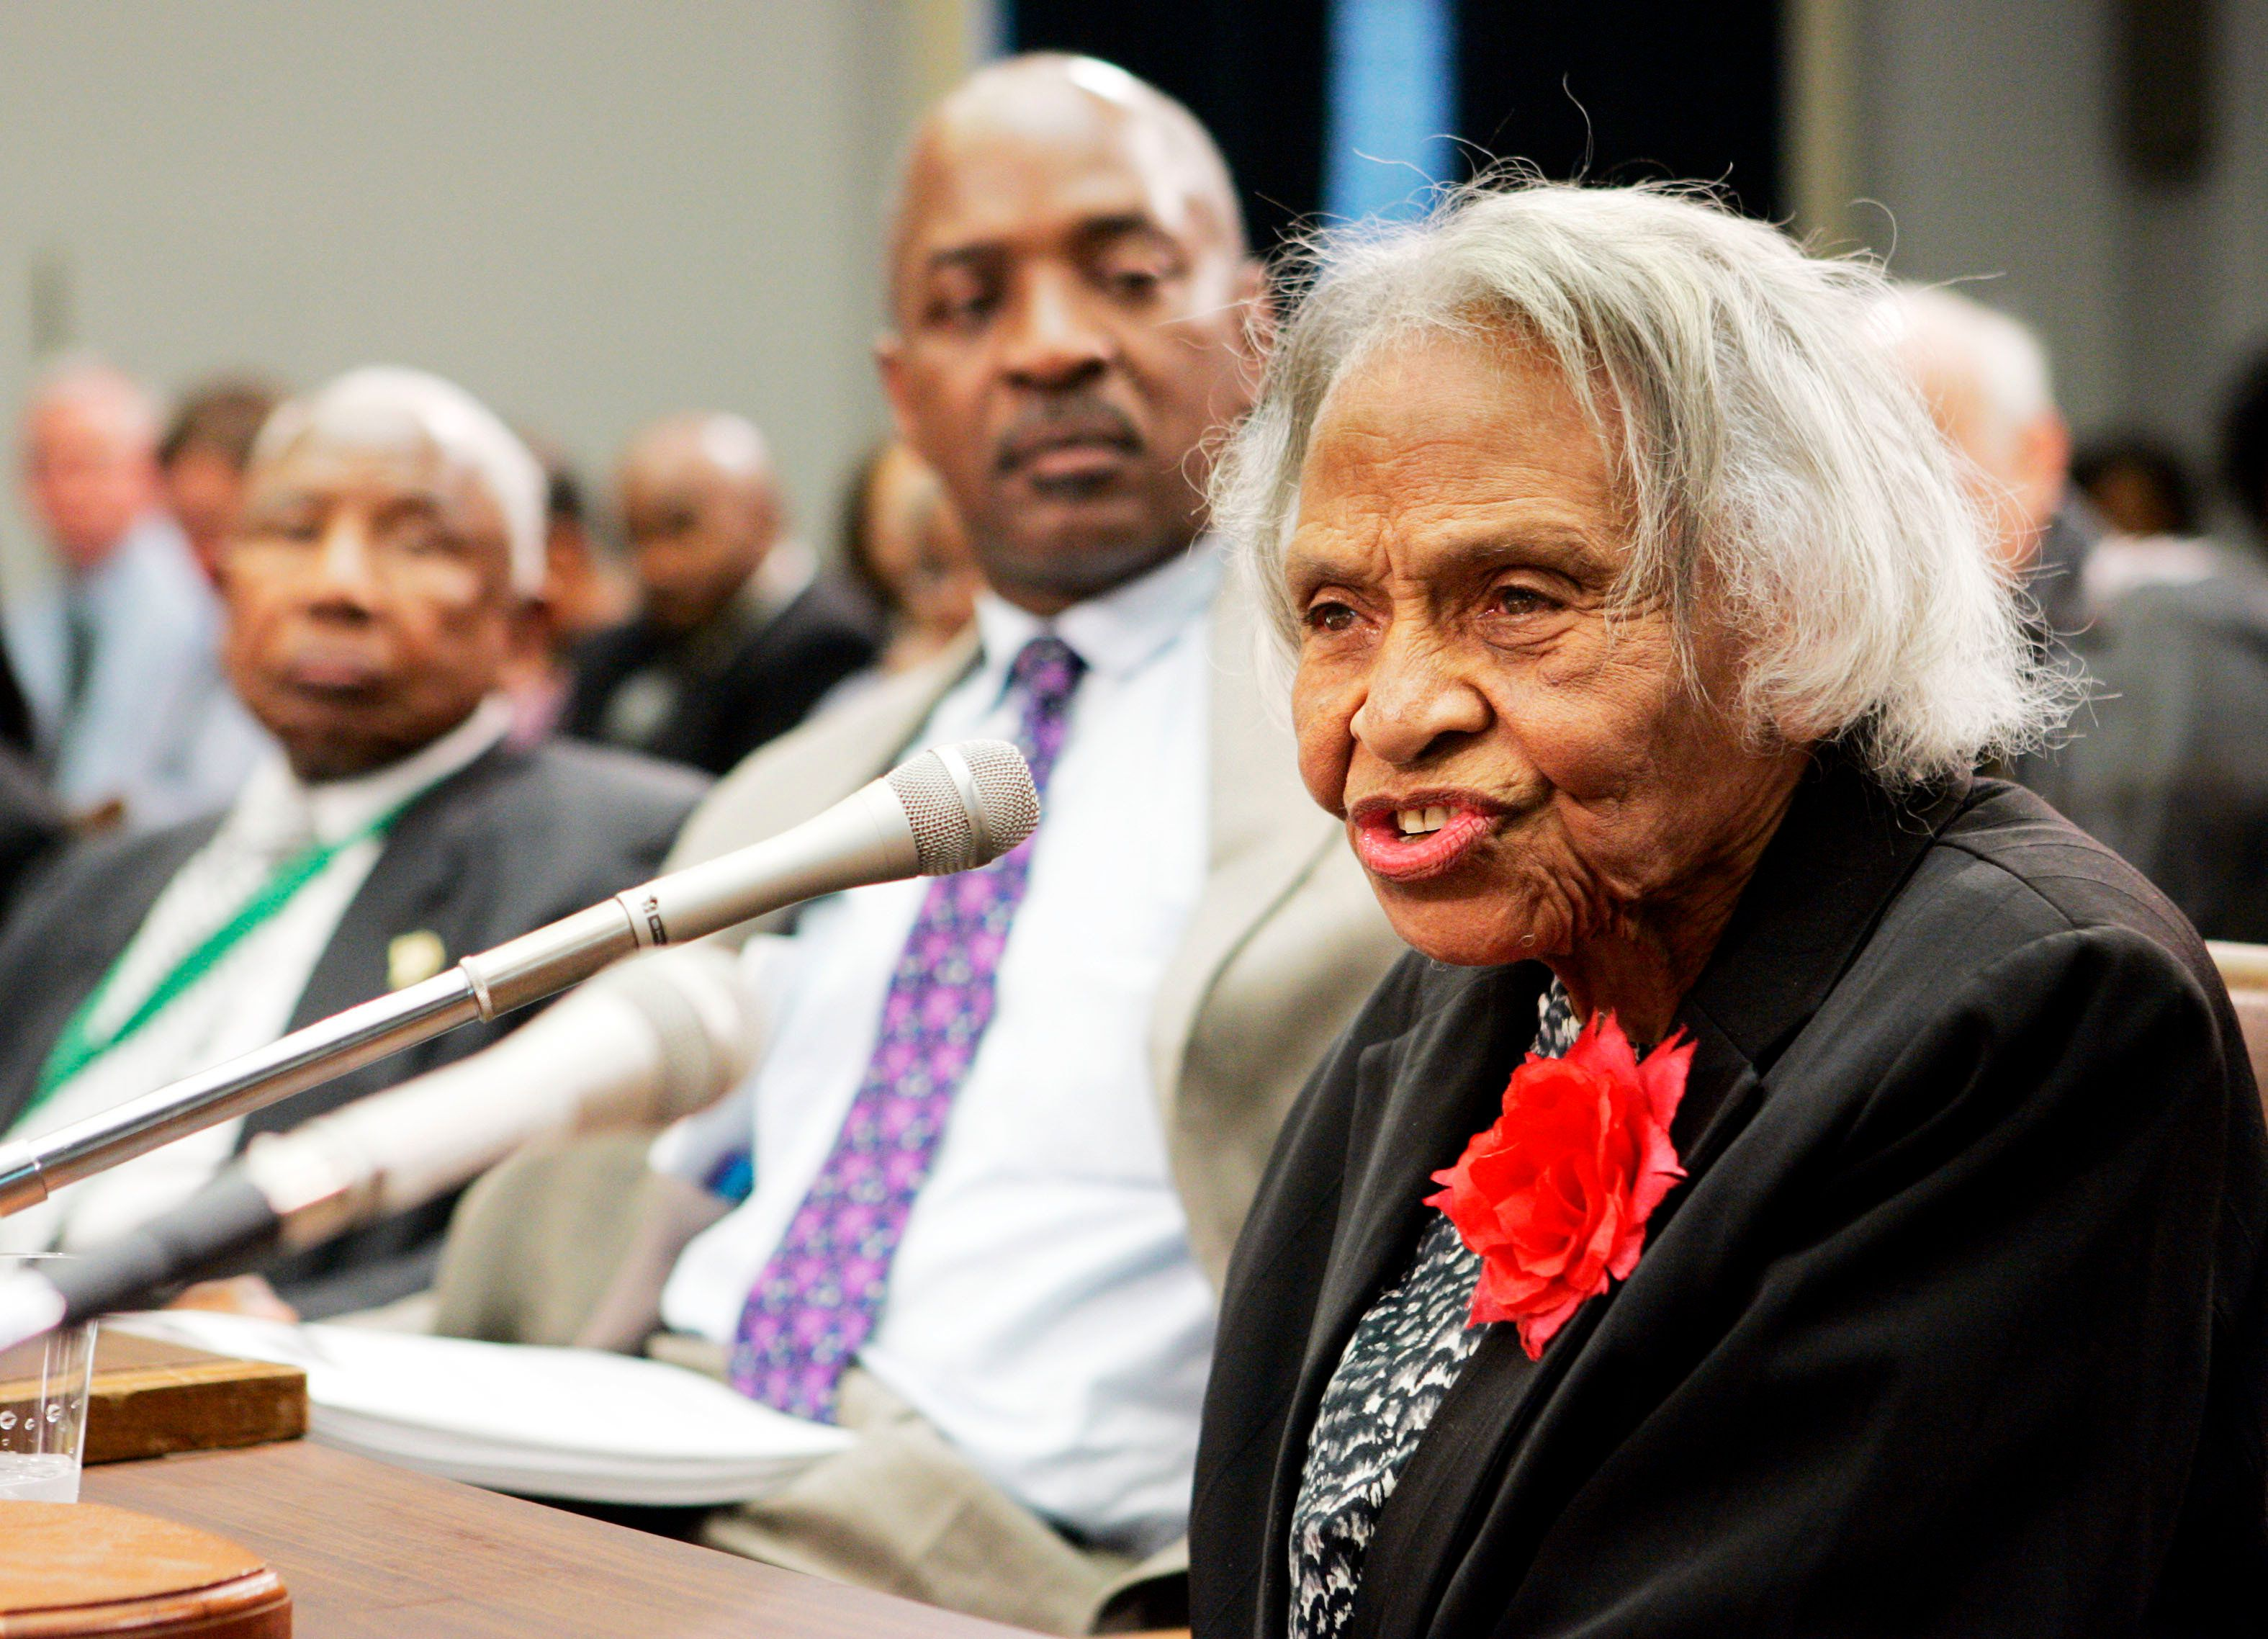 Olivia Hooker, one of the last survivors of the 1921 Tulsa race riots, has died at the age of 103.